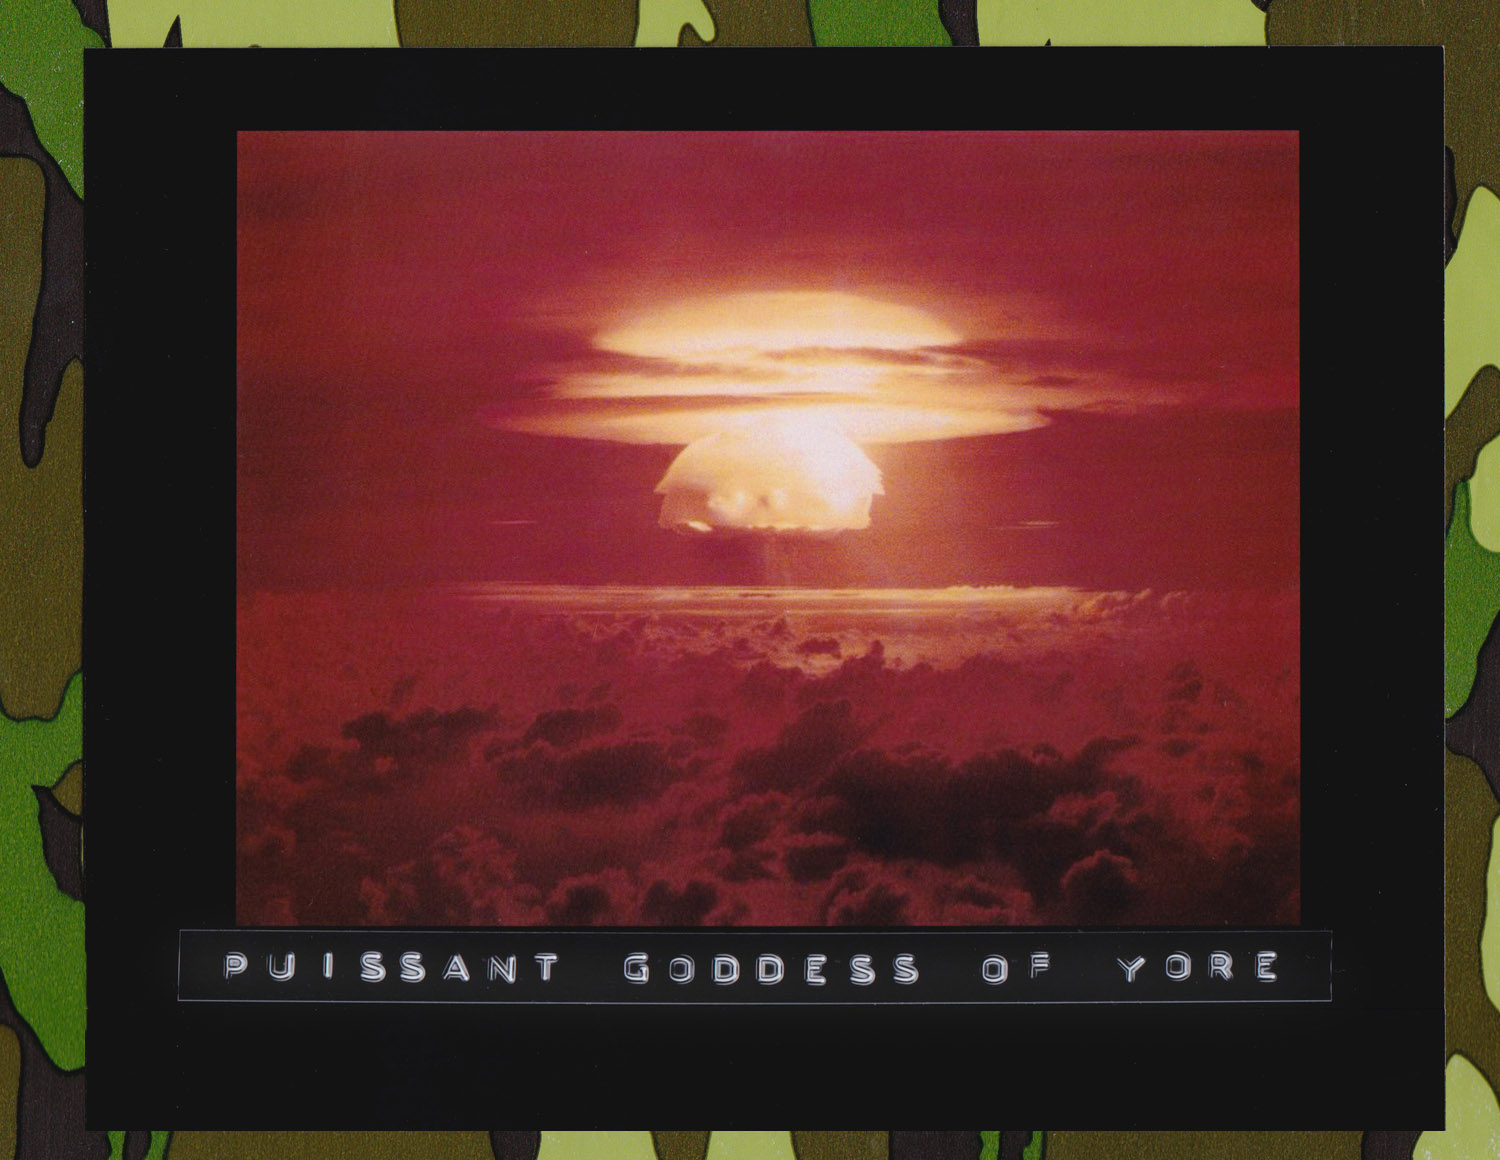 Atomic explosion, Bikini Atoll. U.S. government scientists detonated a hydrogen bomb on the tiny island on March 1, 1954. The massive explosion vaporized everything on three islands in the atoll, raised water temperatures to 55,000 degrees and left a crater that was 1.2 miles wide and 240 feet deep. (Source: United States Dept. of Energy,or predecessor organization)